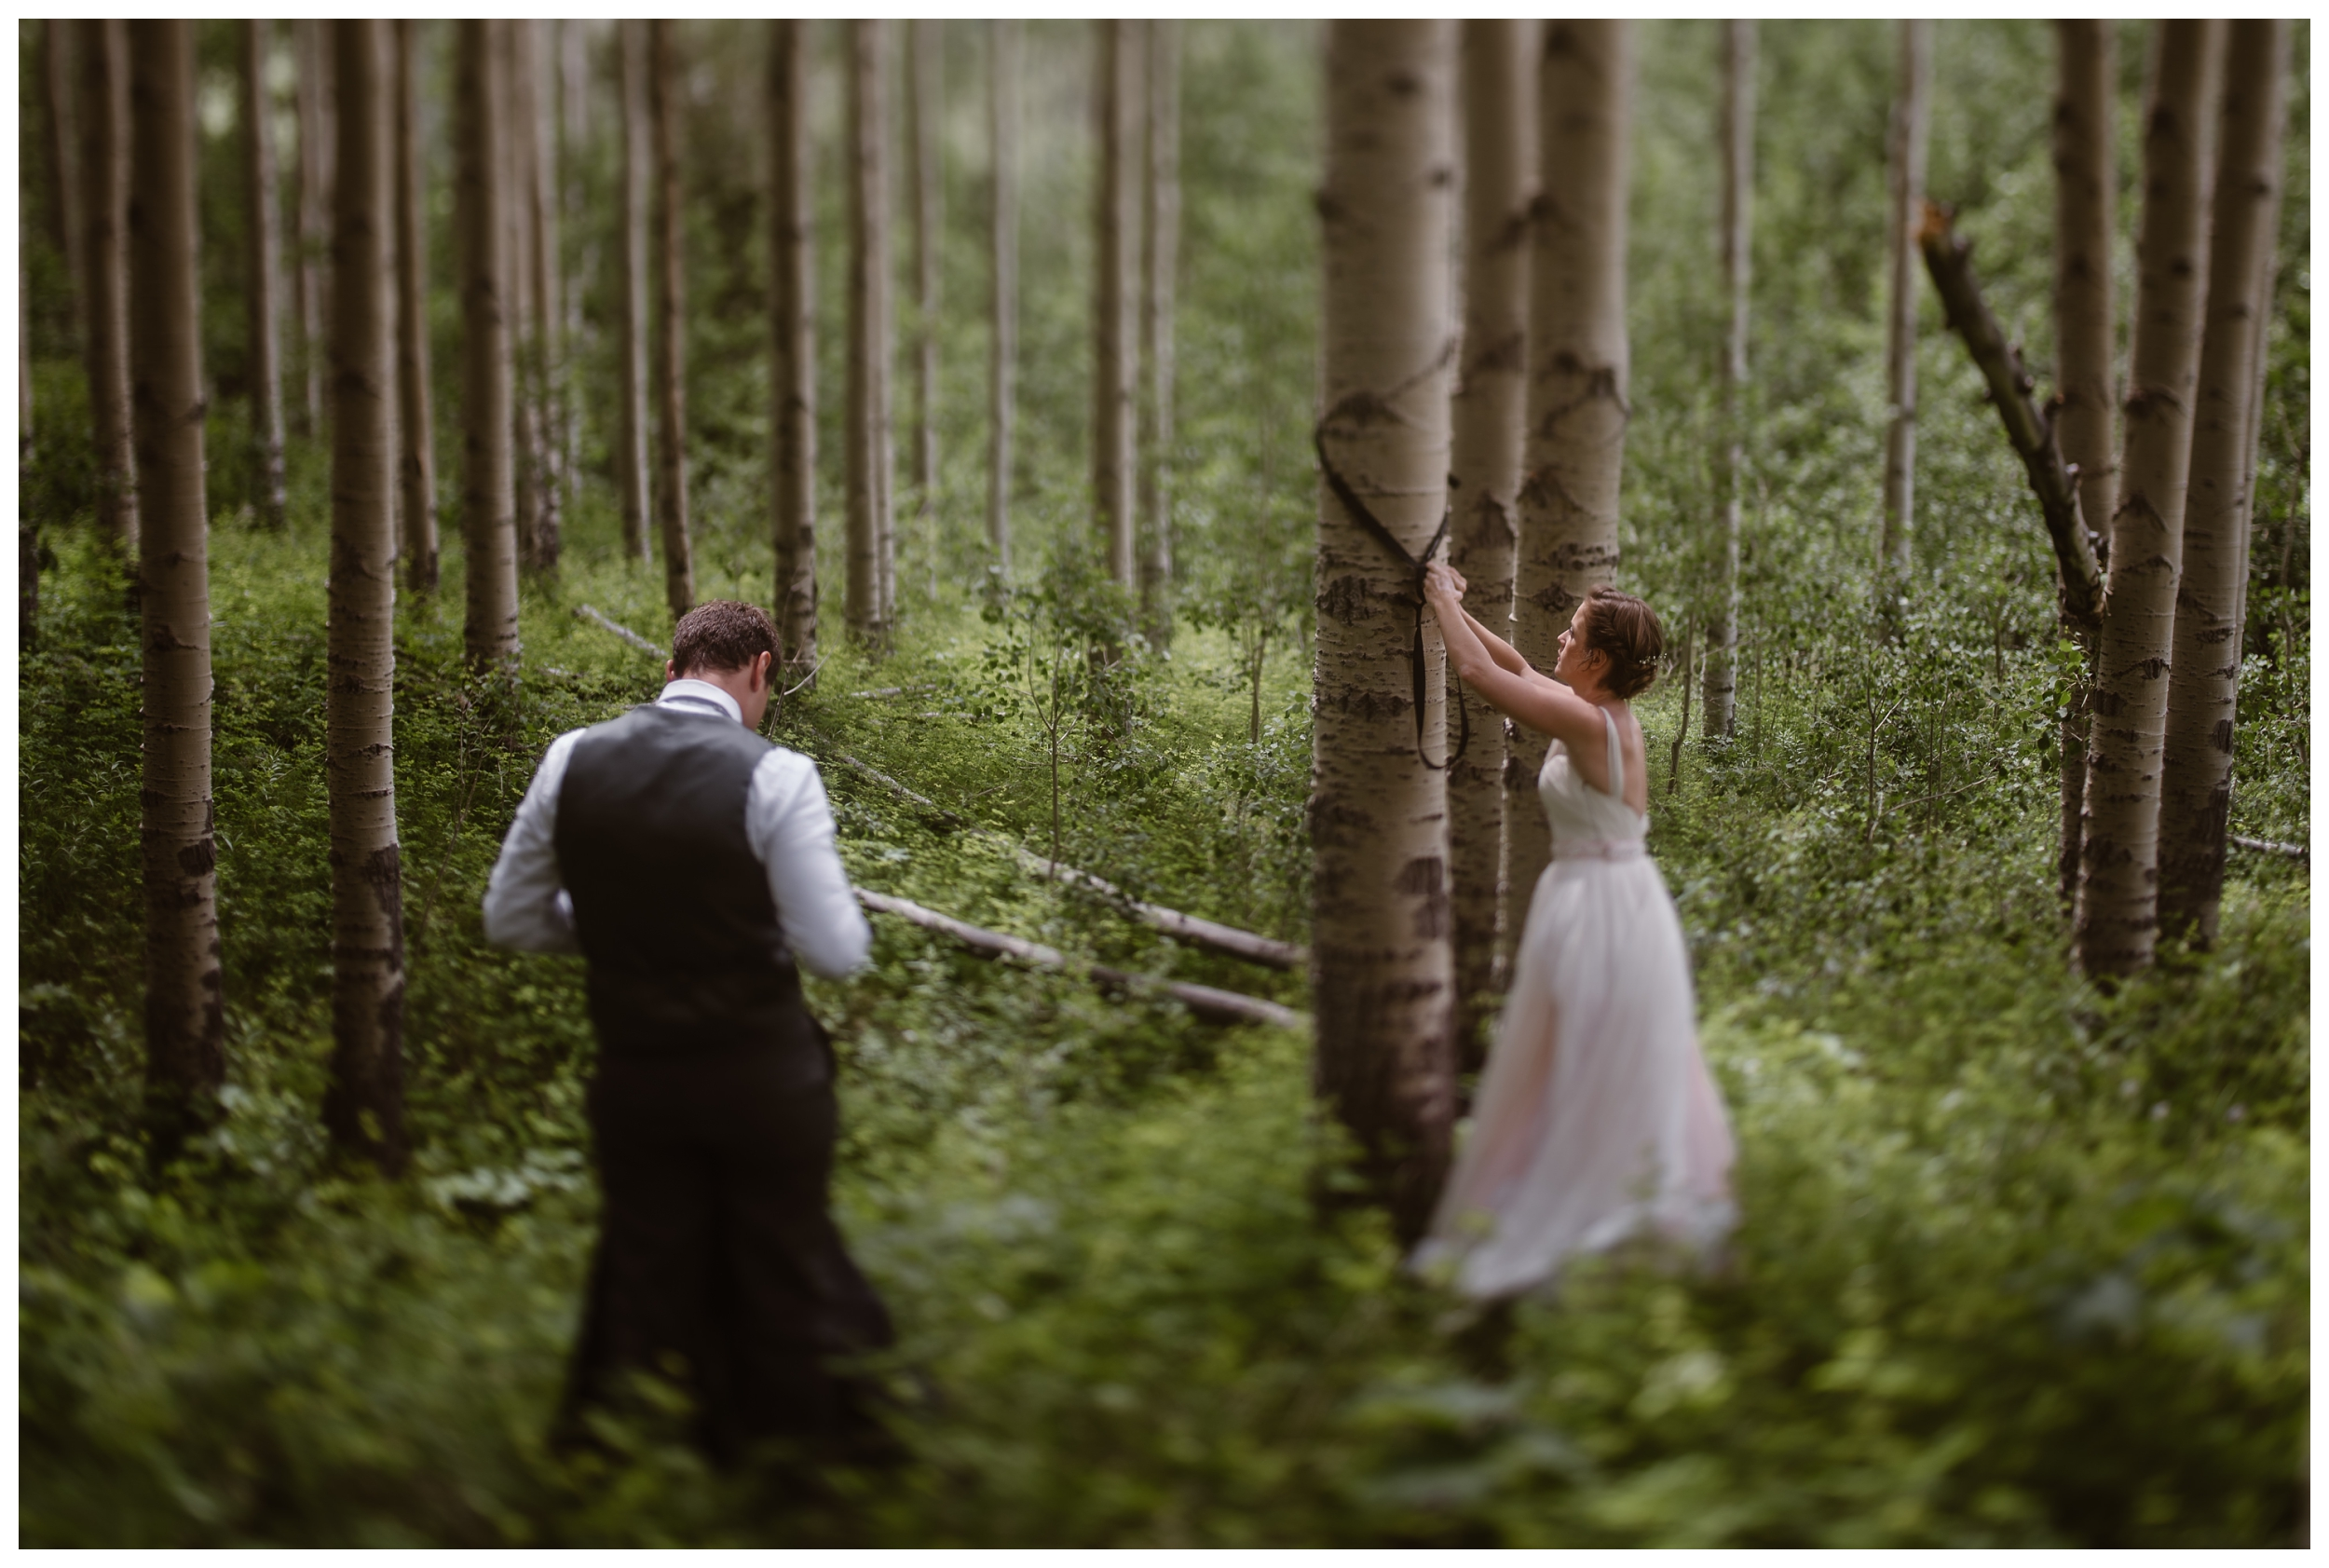 In old growth forests outside Aspen, Colorado's Maroon Bells, Marcela and Vasily hang a pack hammock following their outdoor elopement ceremony. Photo by Maddie Mae, Adventure Instead.